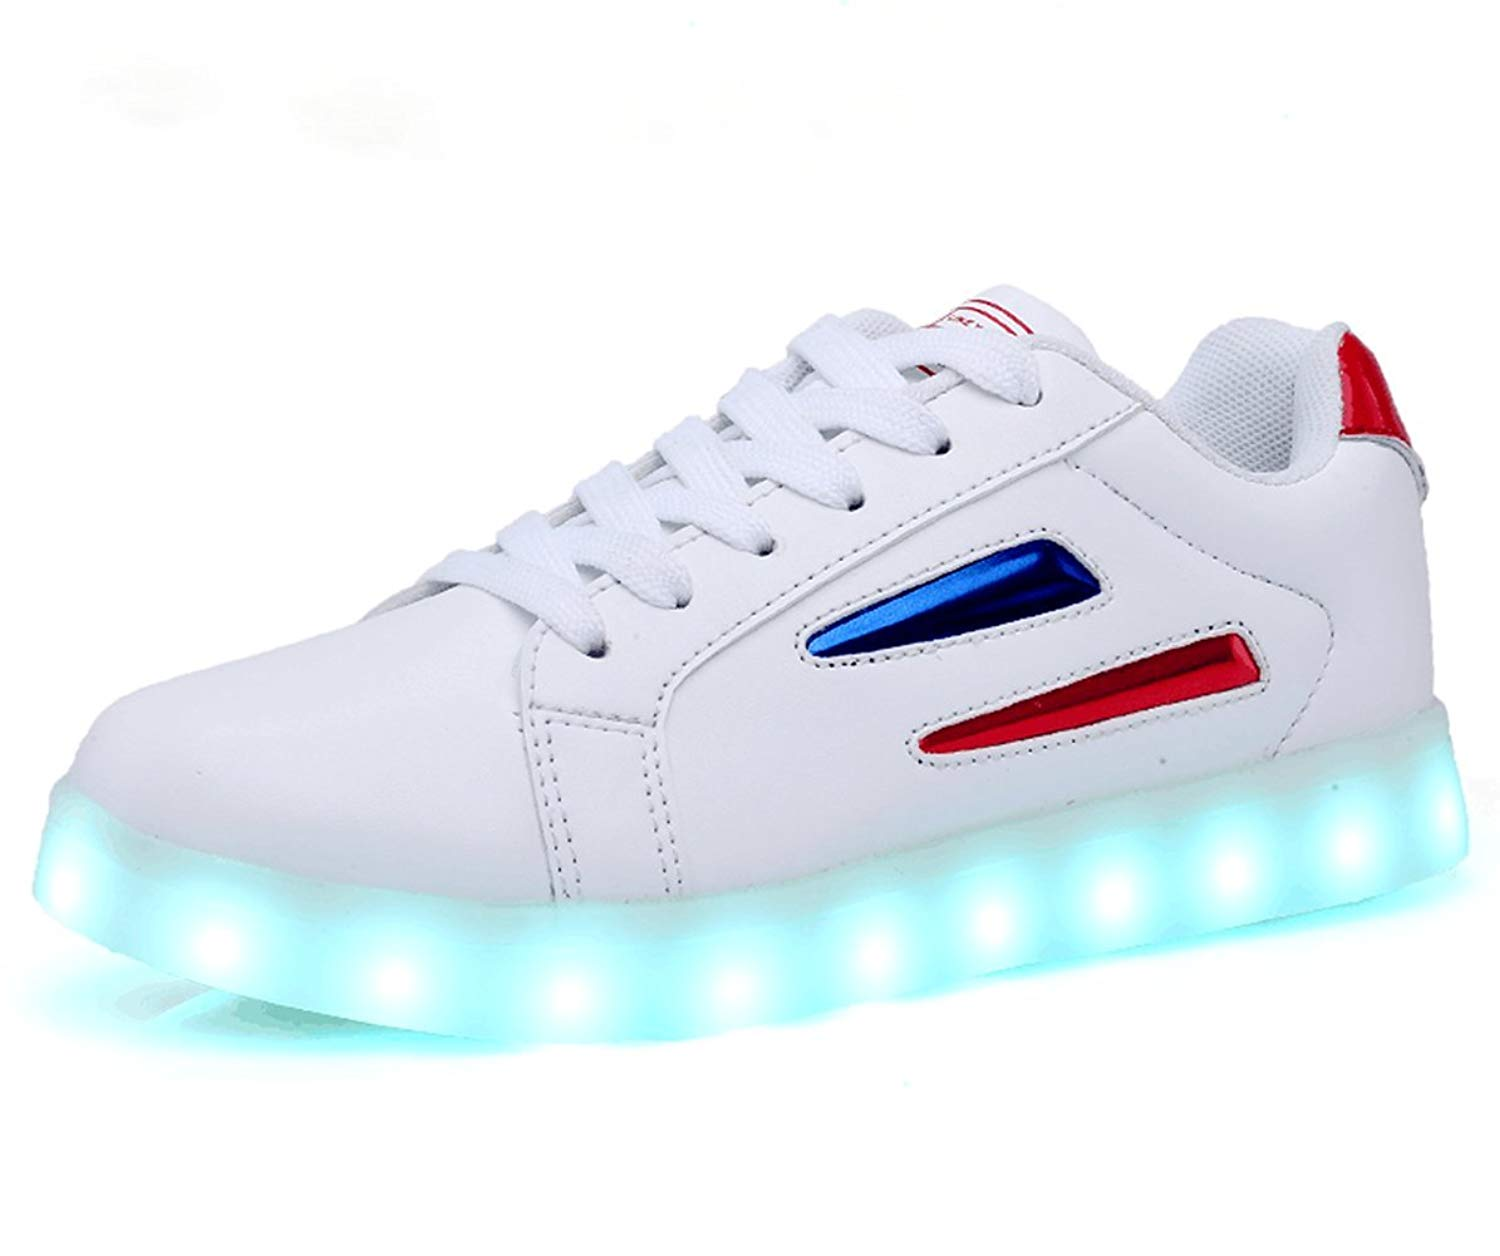 Get Quotations · Veribuy Mens   Womens Light Up LED Shoes Sneakers USB  Charging 7 Color Cool Gift d6bb25ec8